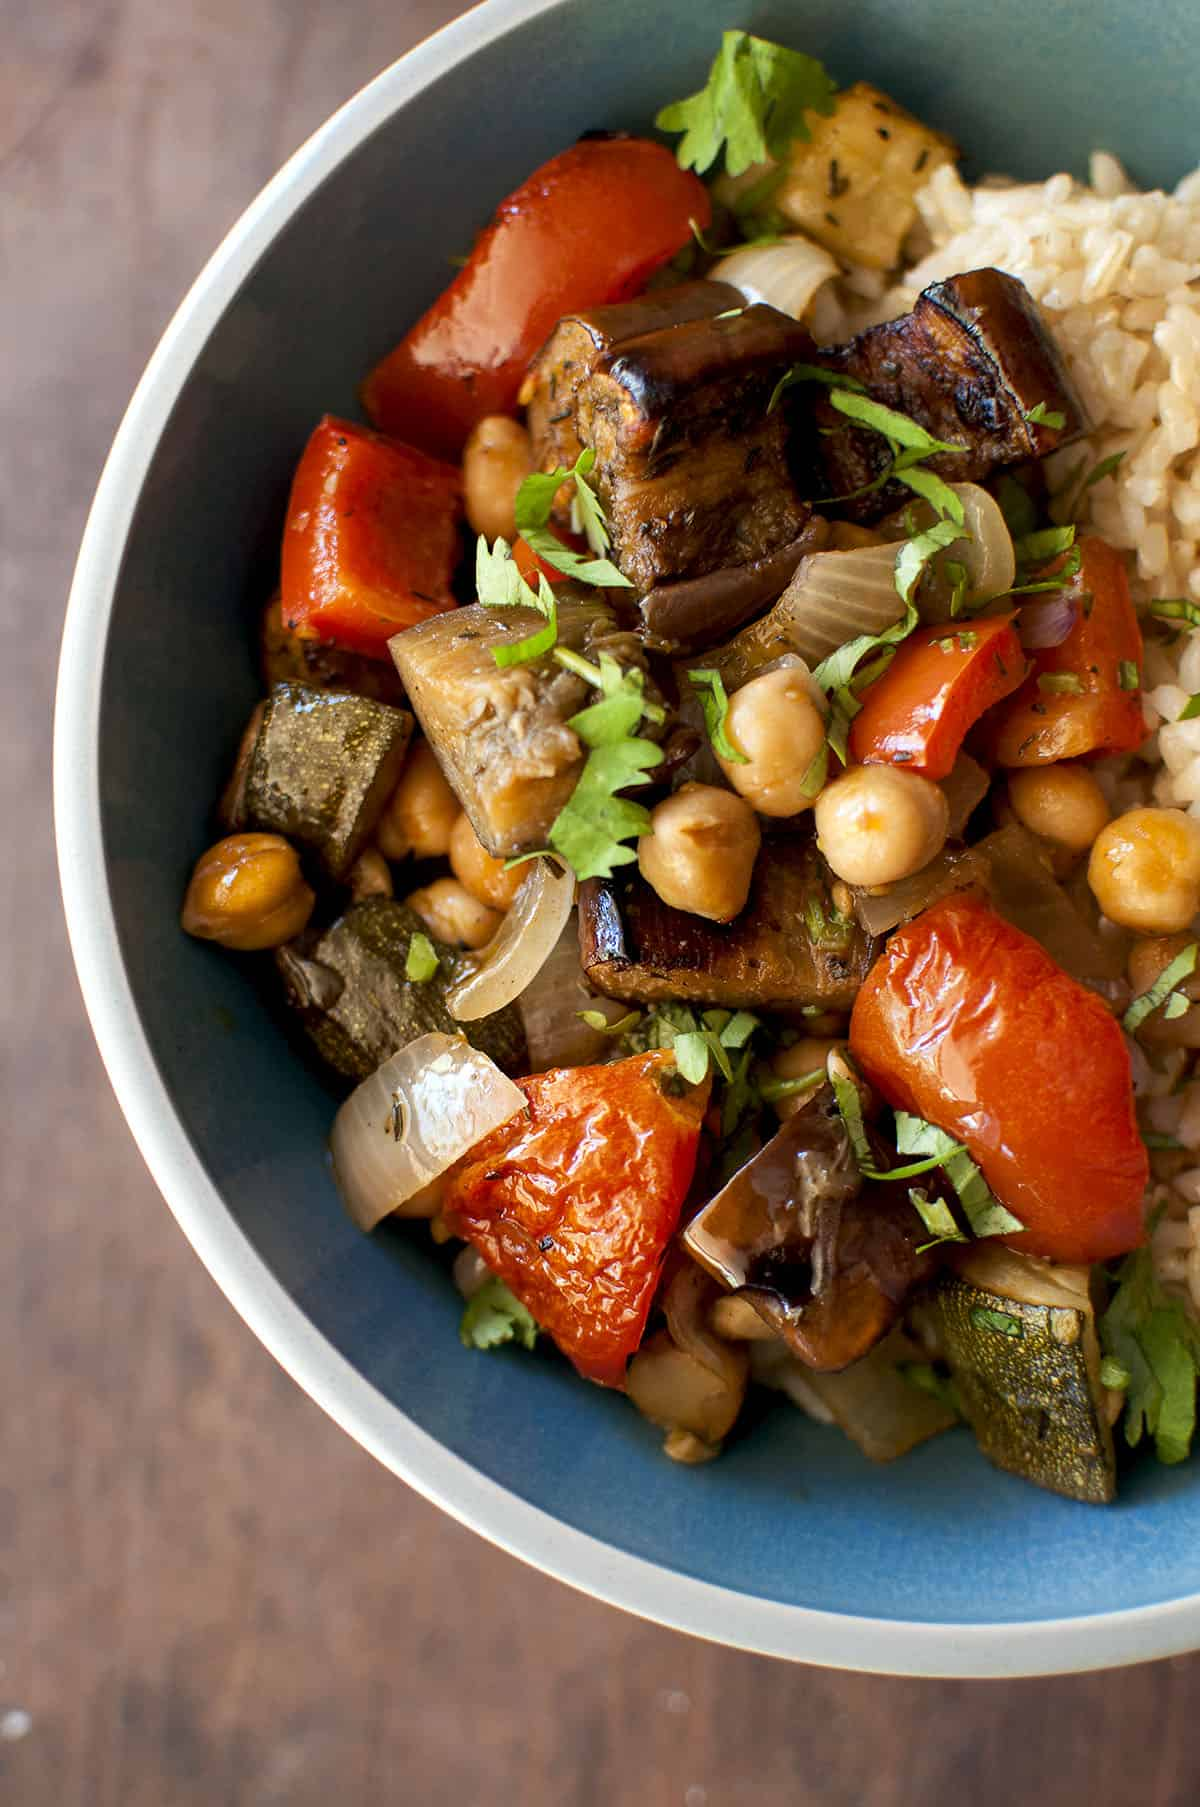 Grey bowl with roasted ratatouille garnished with fresh herbs